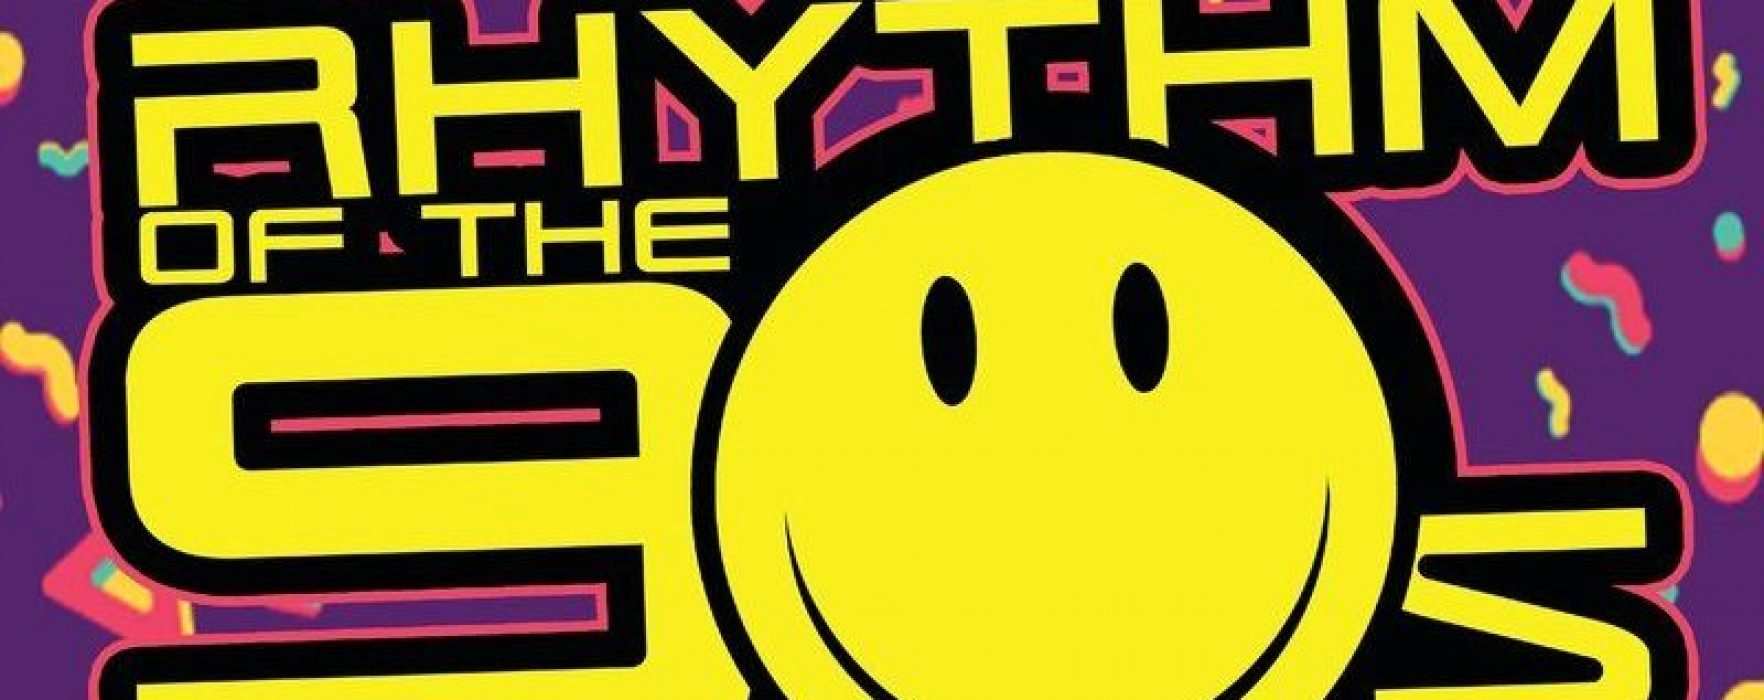 This is the Rhythm of the 90s… and it's coming to Manchester this May